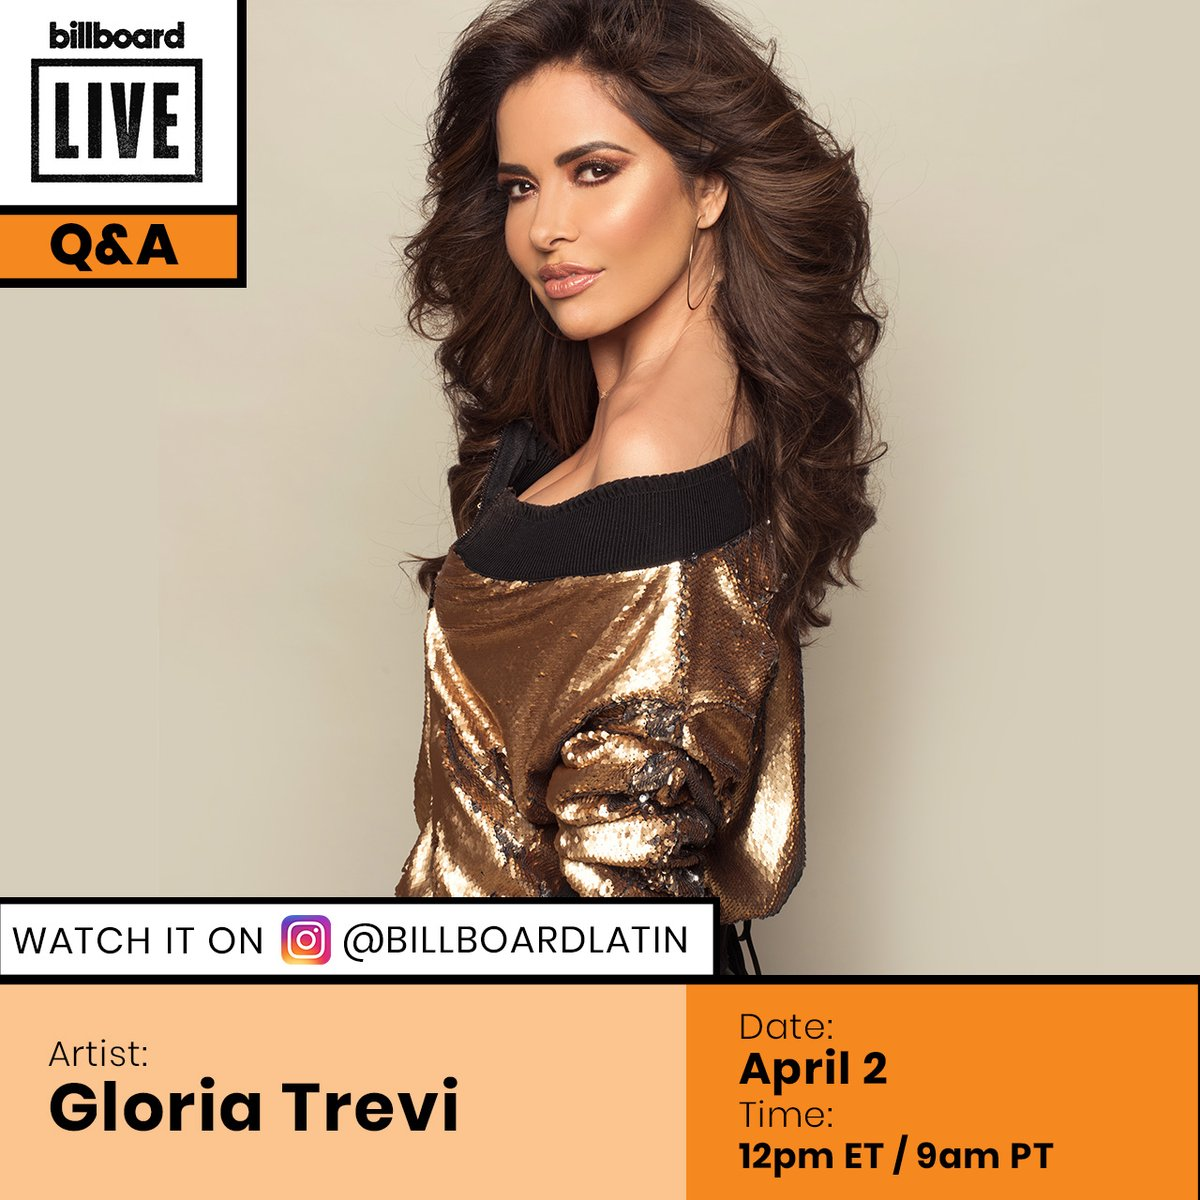 Don't miss our #BillboardLive Q&A with @GloriaTrevi on @billboardlatin's Instagram today!   Tune in at 12 pm ET: https://t.co/sBGM1hmc39 https://t.co/2cK2cgSsZ7